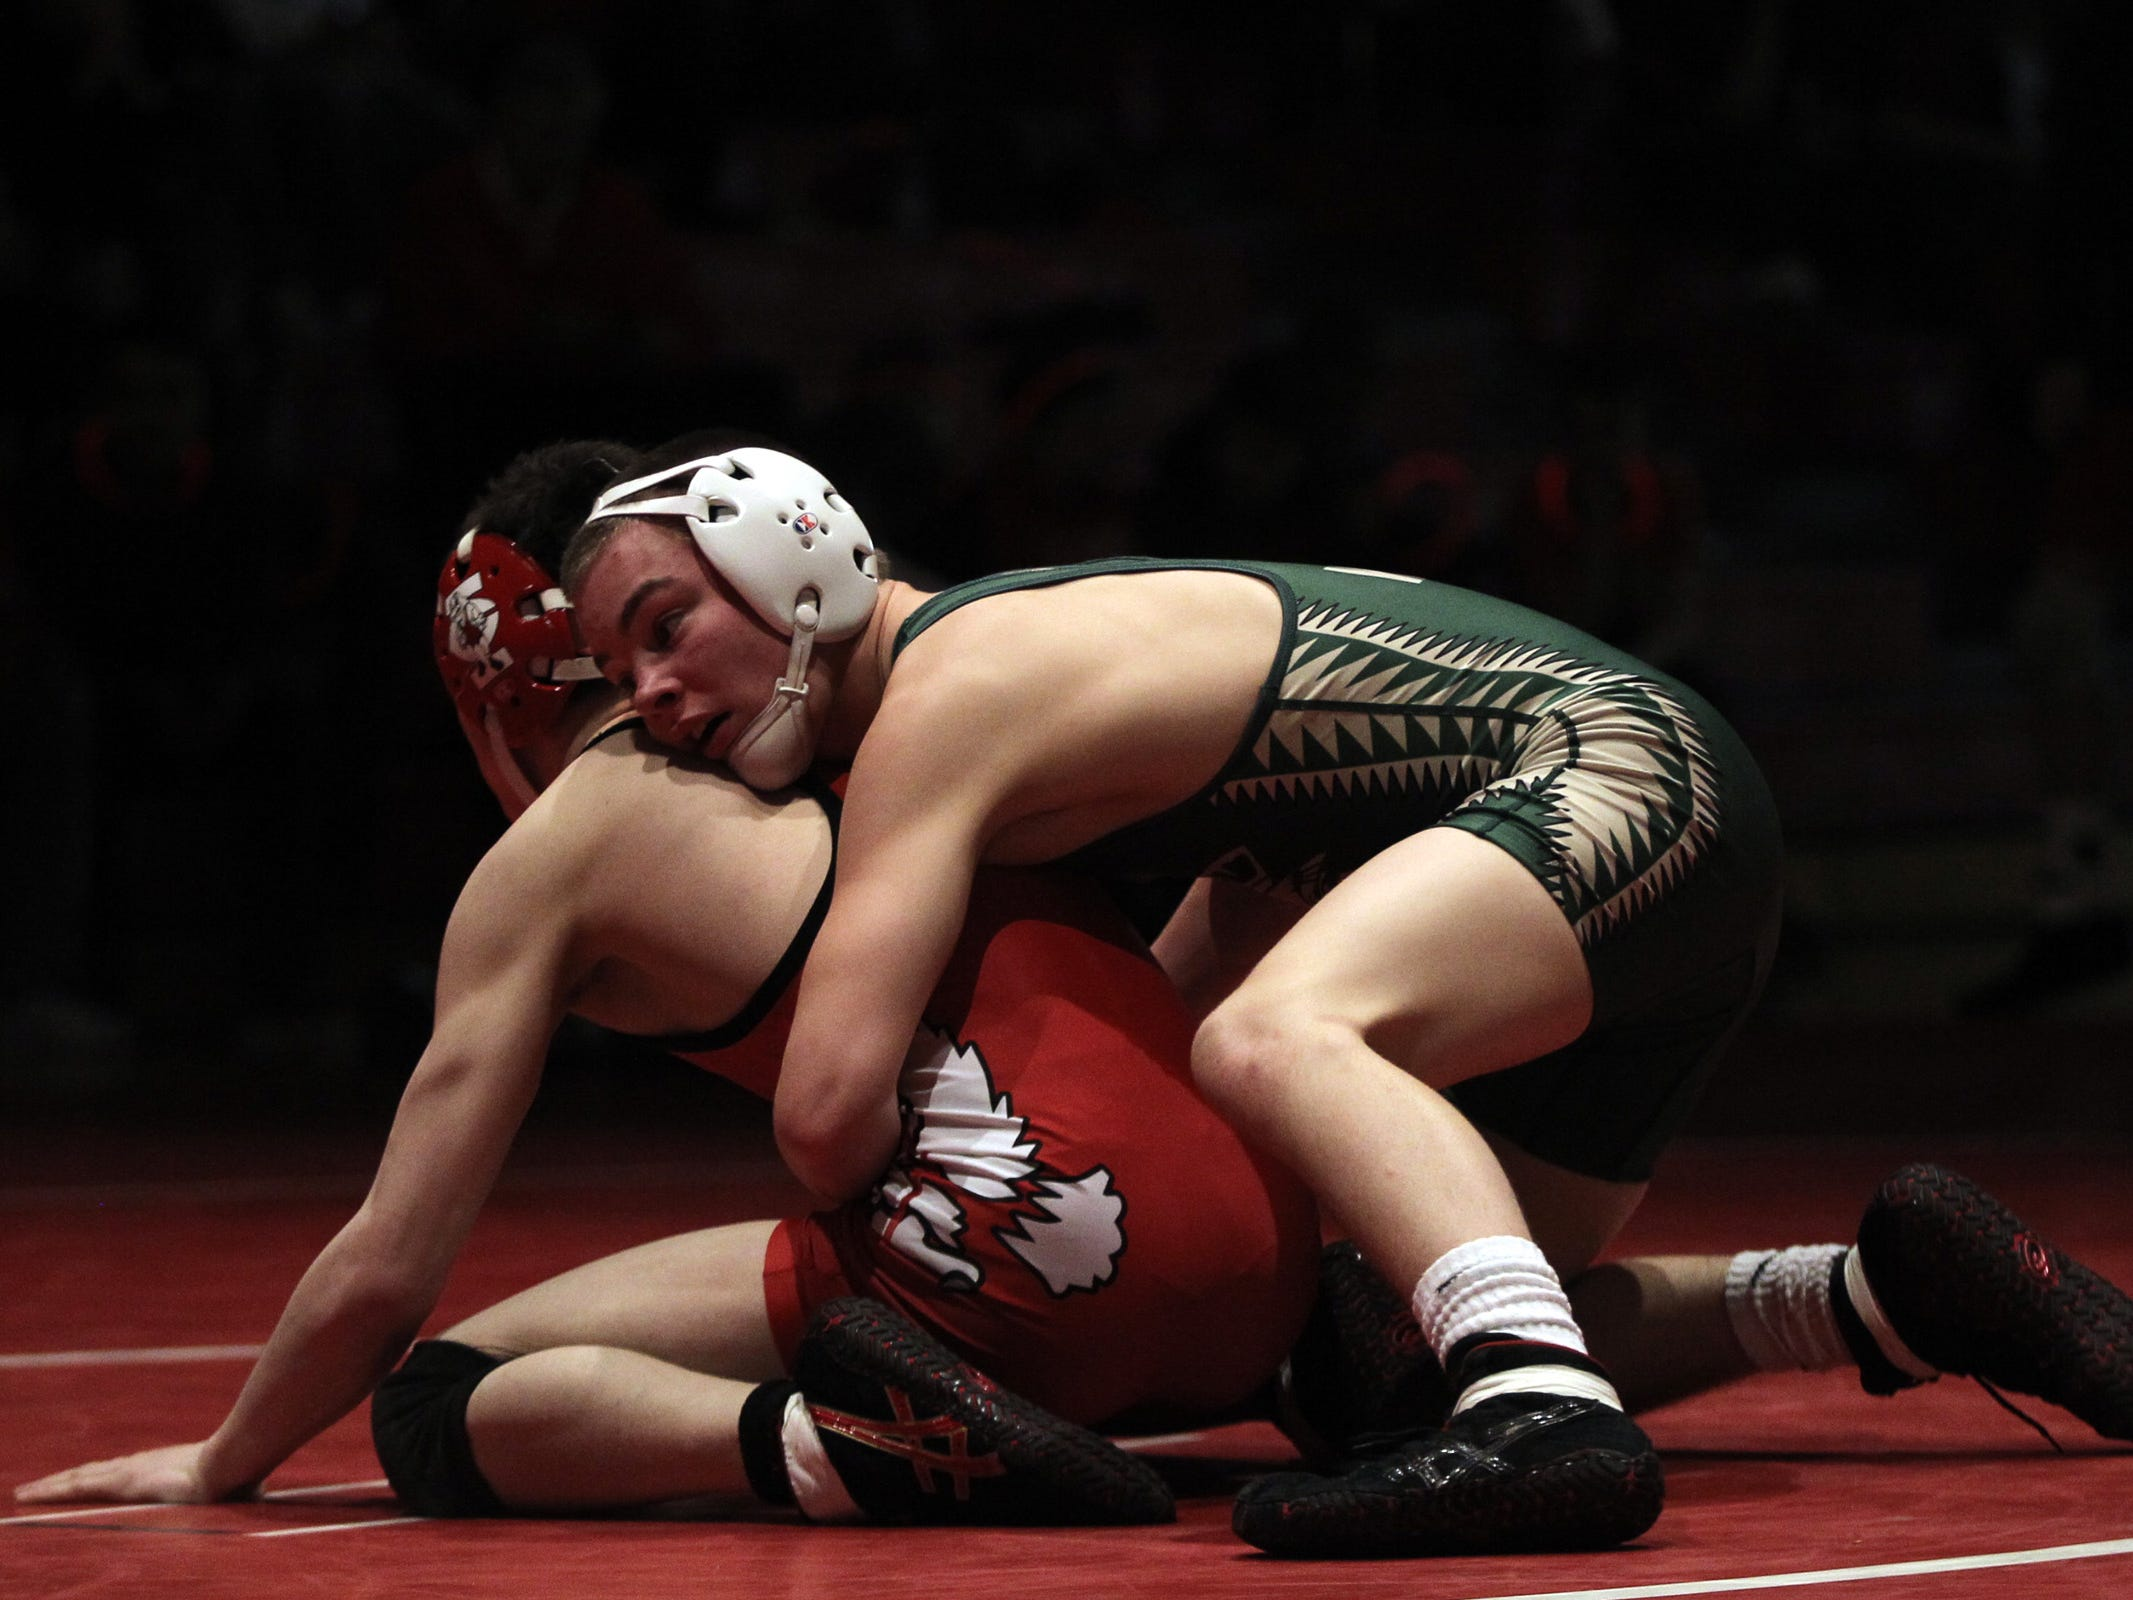 West High's Tanner Rohweder, top, wrestles City High's Griffin Benge last year. Rohweder is a four-time state qualifier and already has three state medals. He wants to go out on top this week.